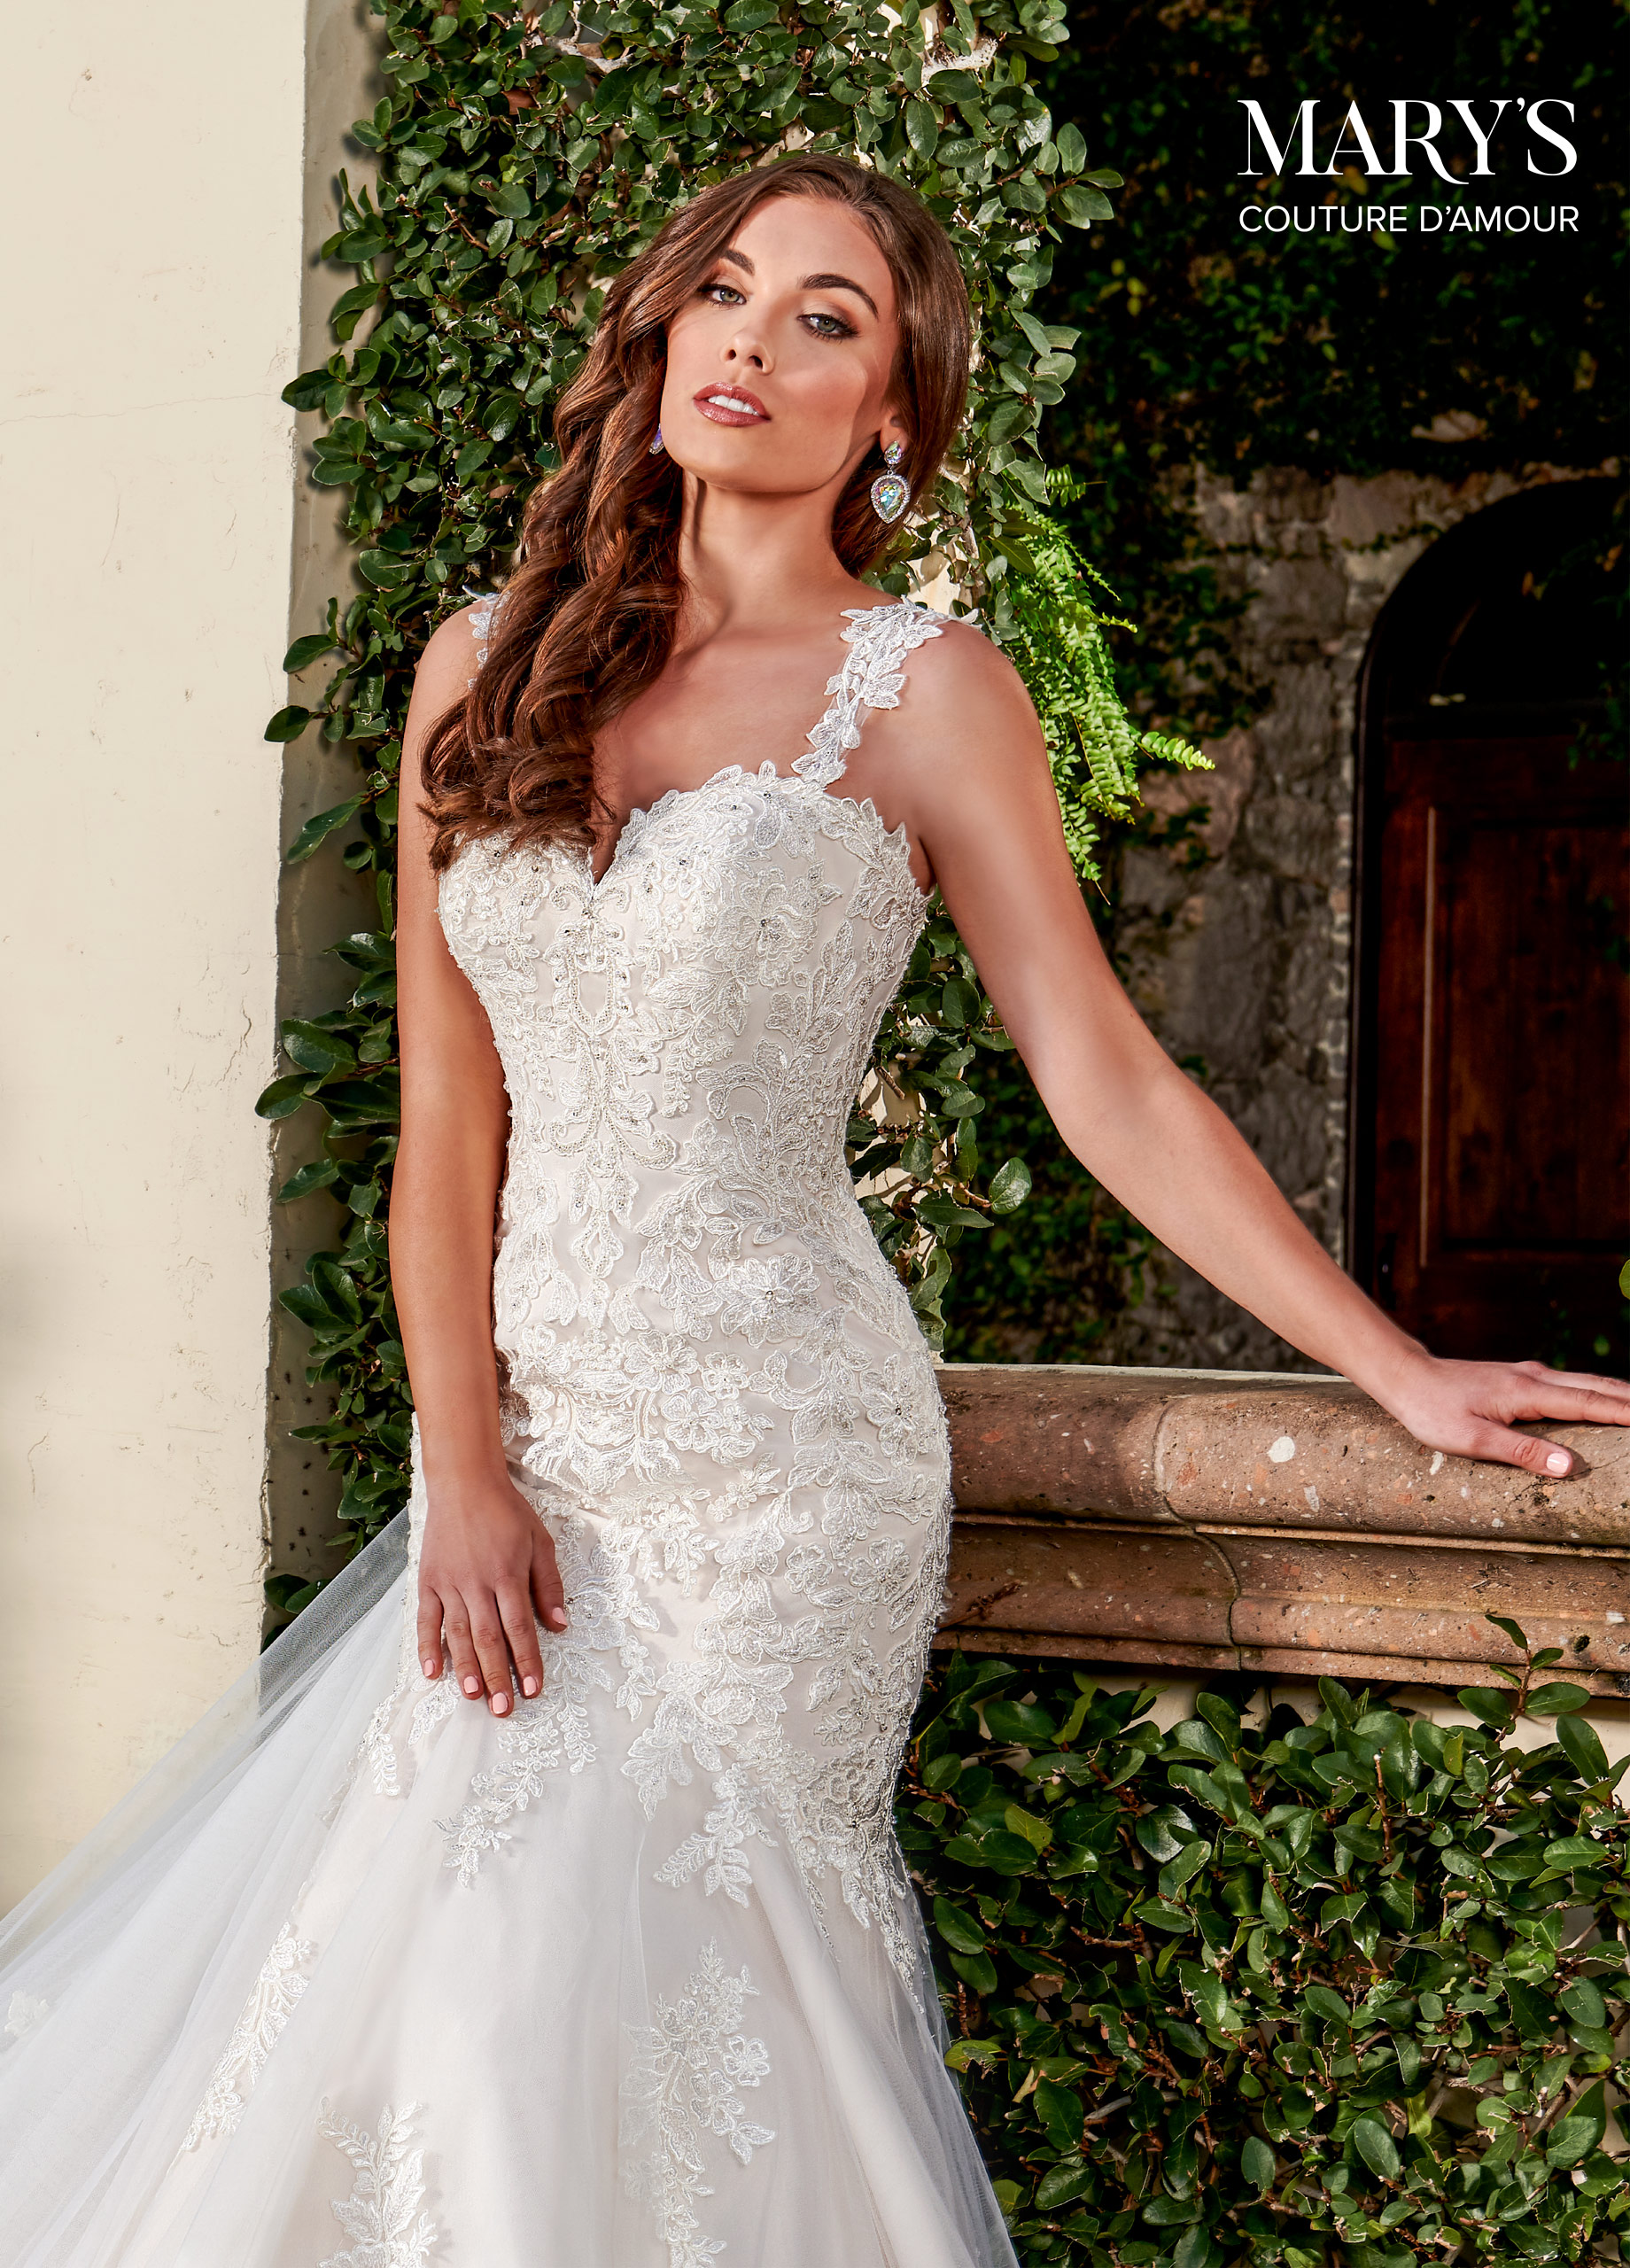 Couture Damour Bridal Dresses | Couture d'Amour | Style - MB4104